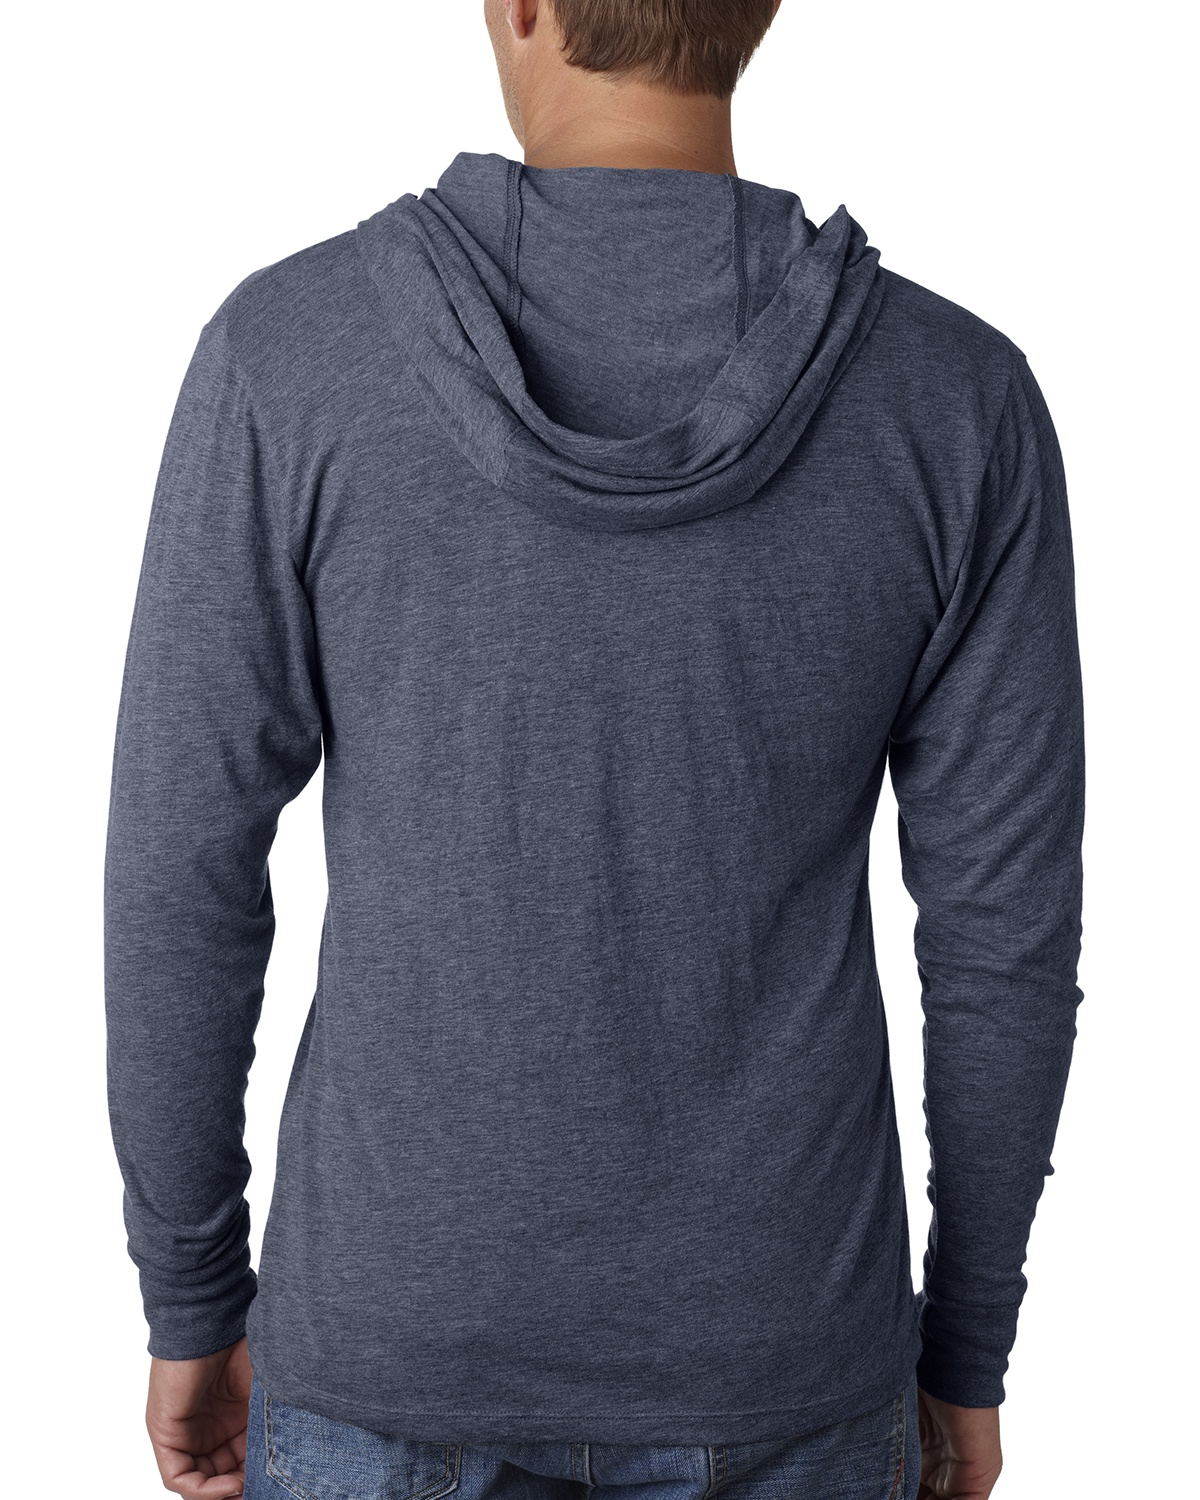 'Next Level N6021 Adult Triblend Long Sleeve Hoody'